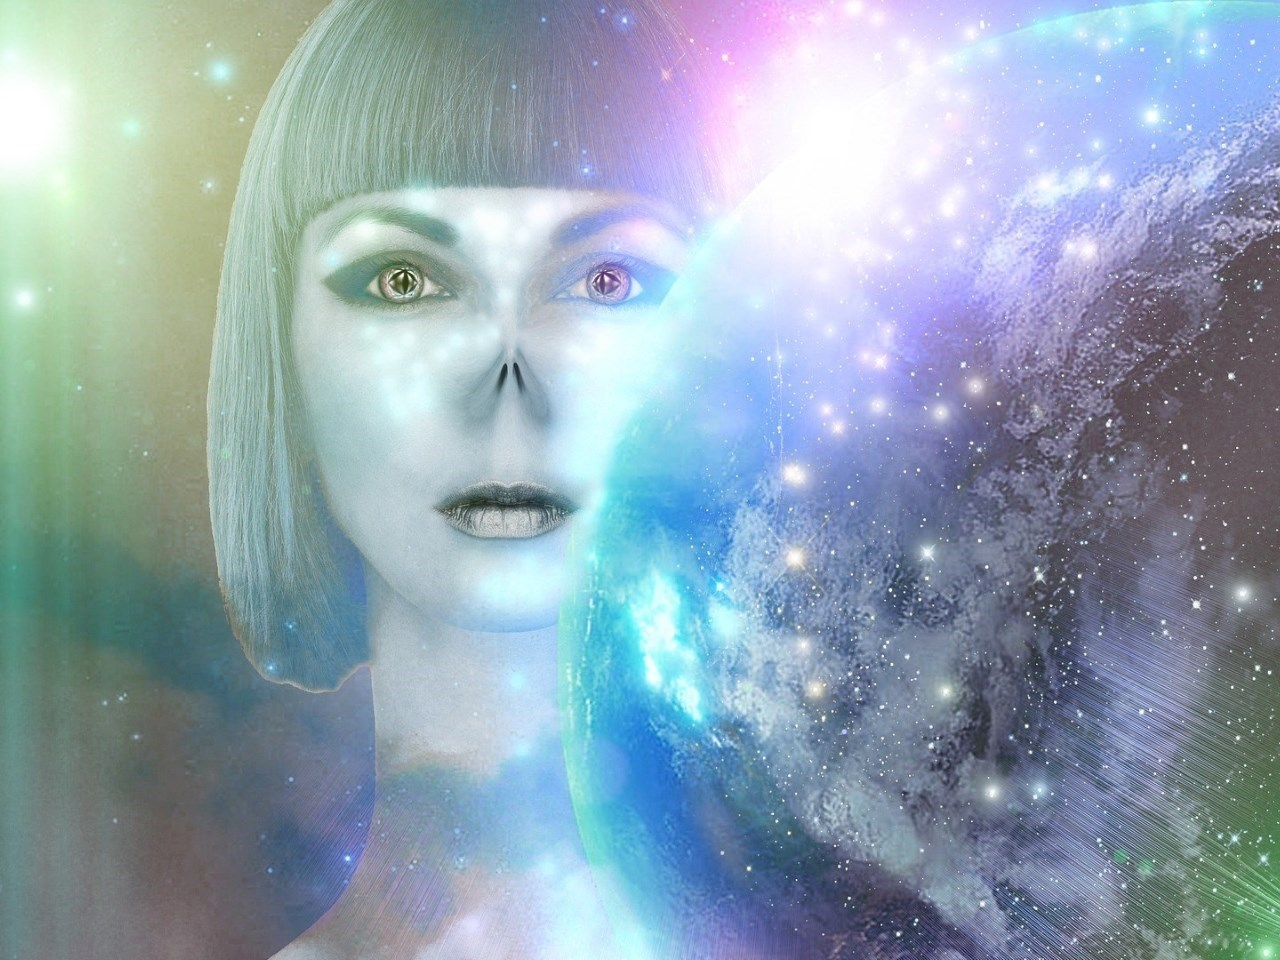 Artistic illustration of an alien woman